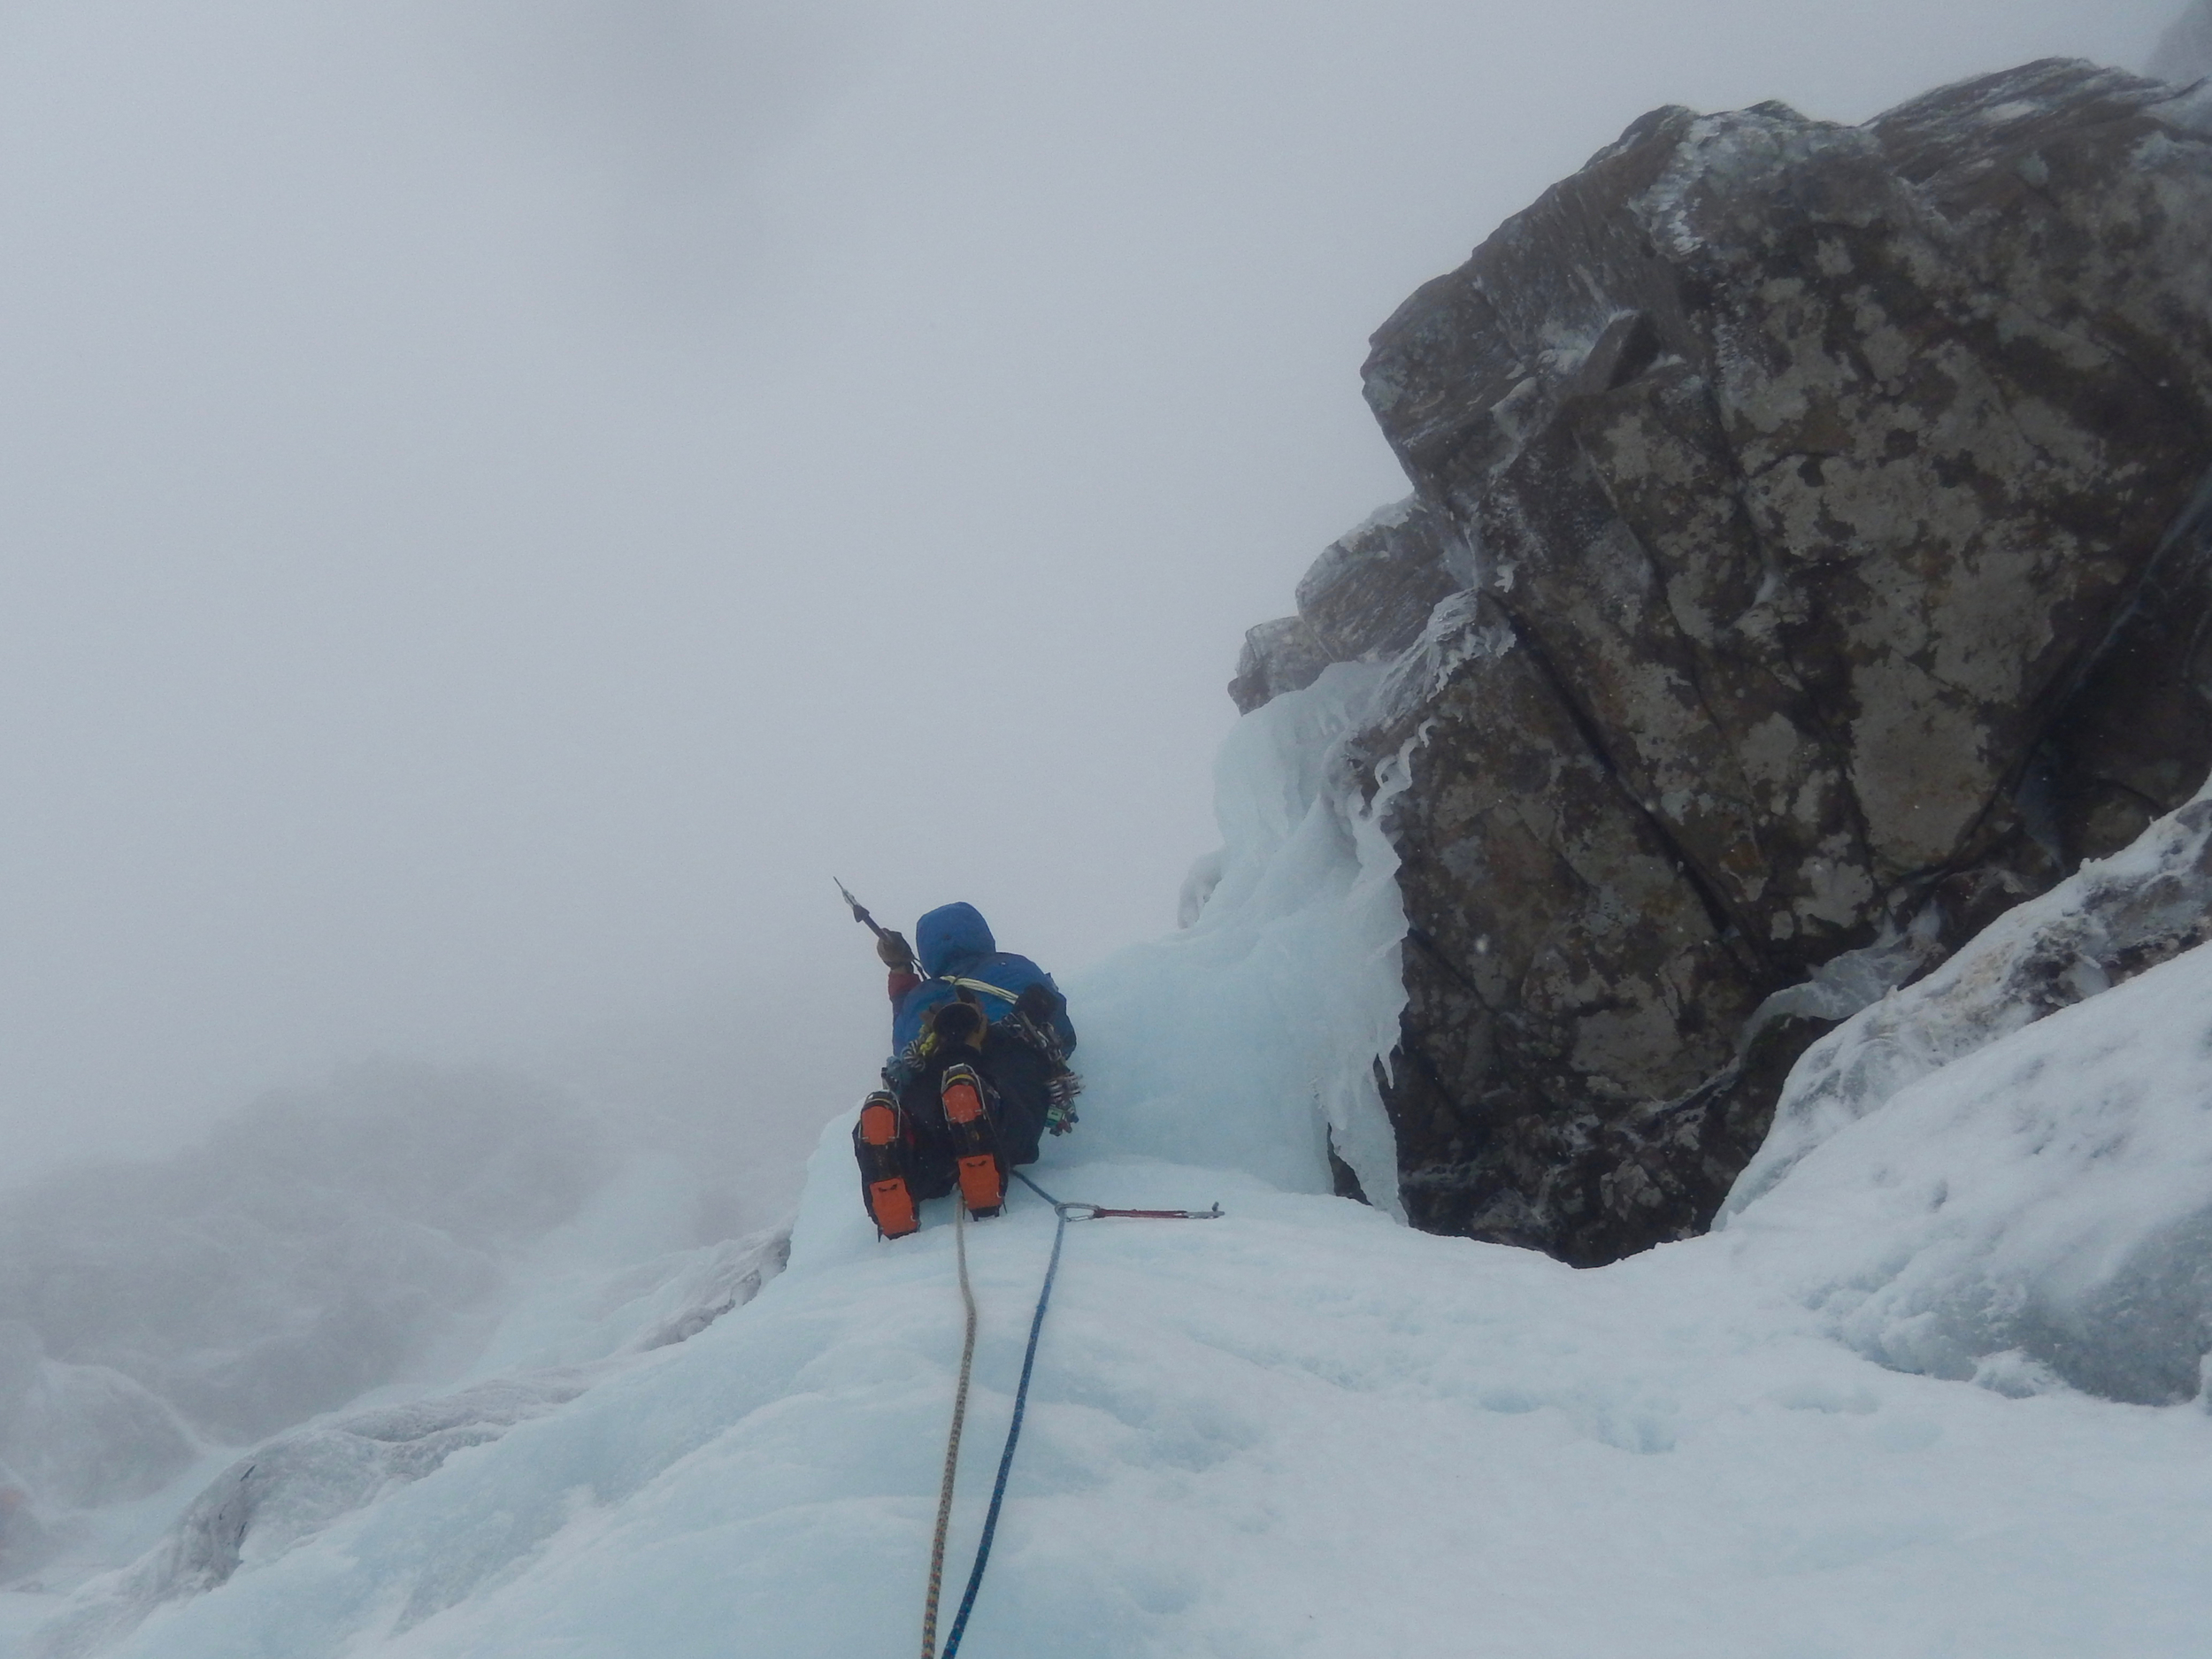 The first of the difficulties on pitch 2